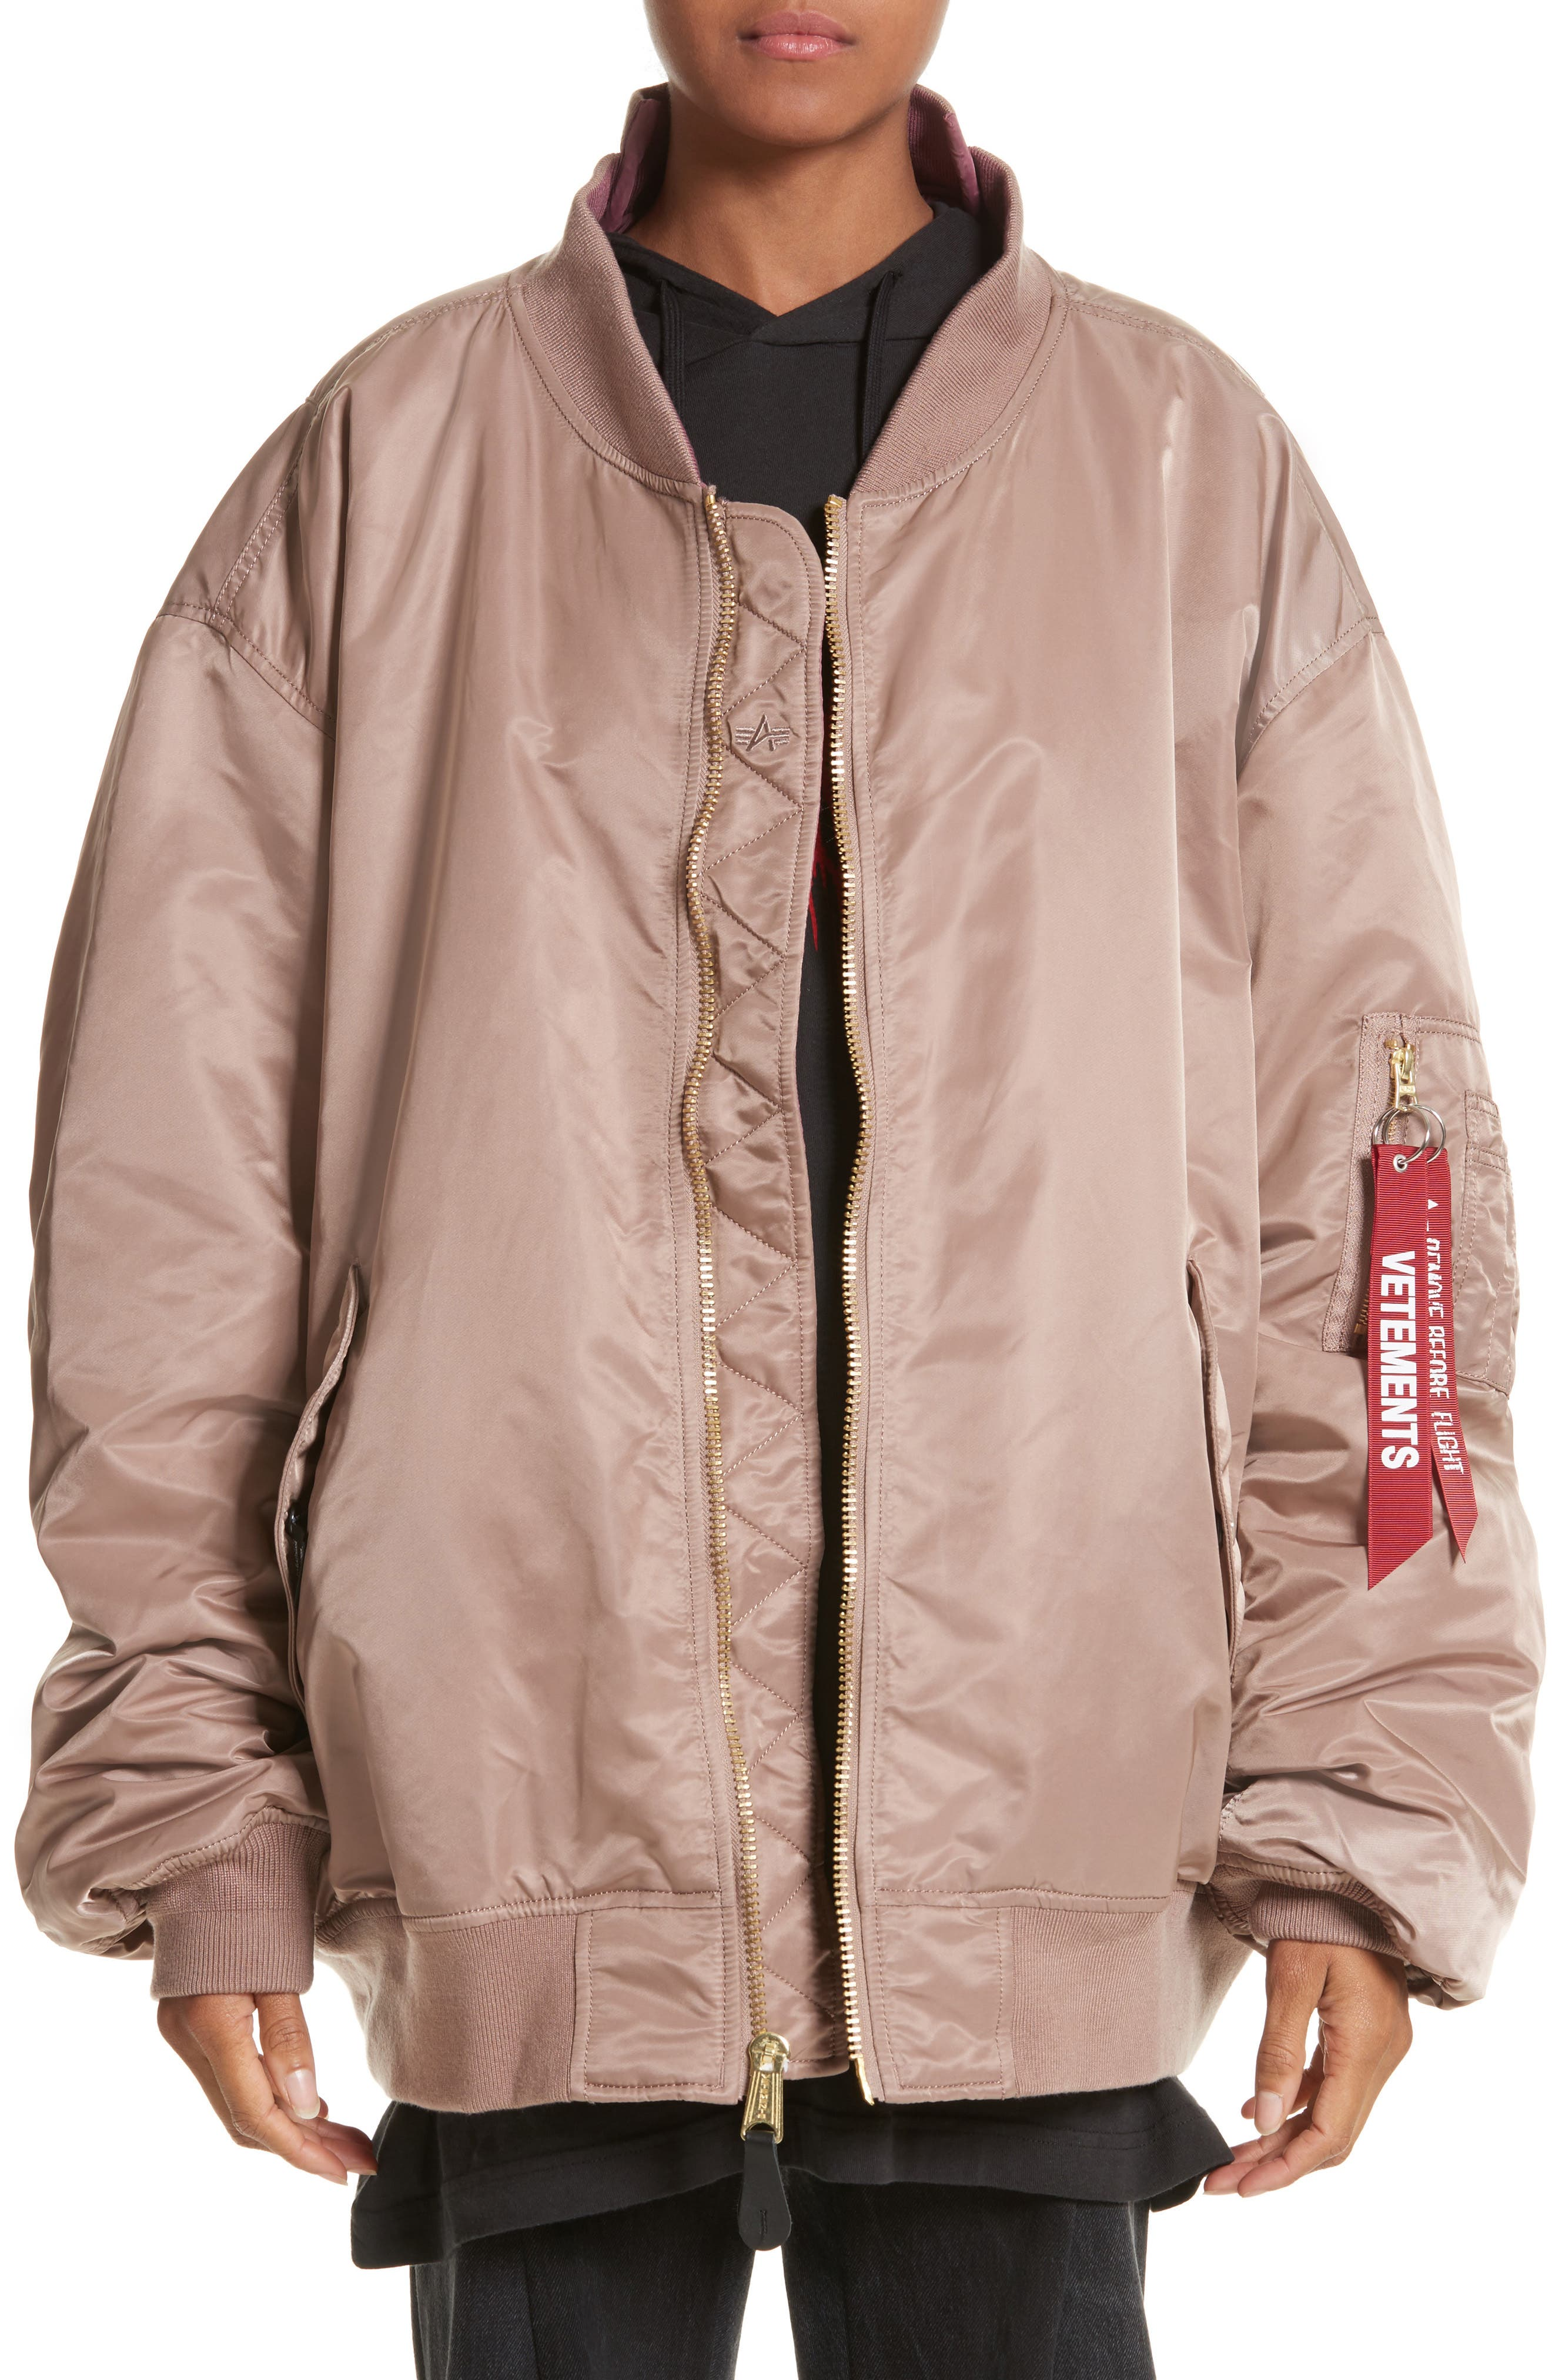 x Alpha Industries Reversible Bomber Jacket,                             Main thumbnail 1, color,                             Rose Pink